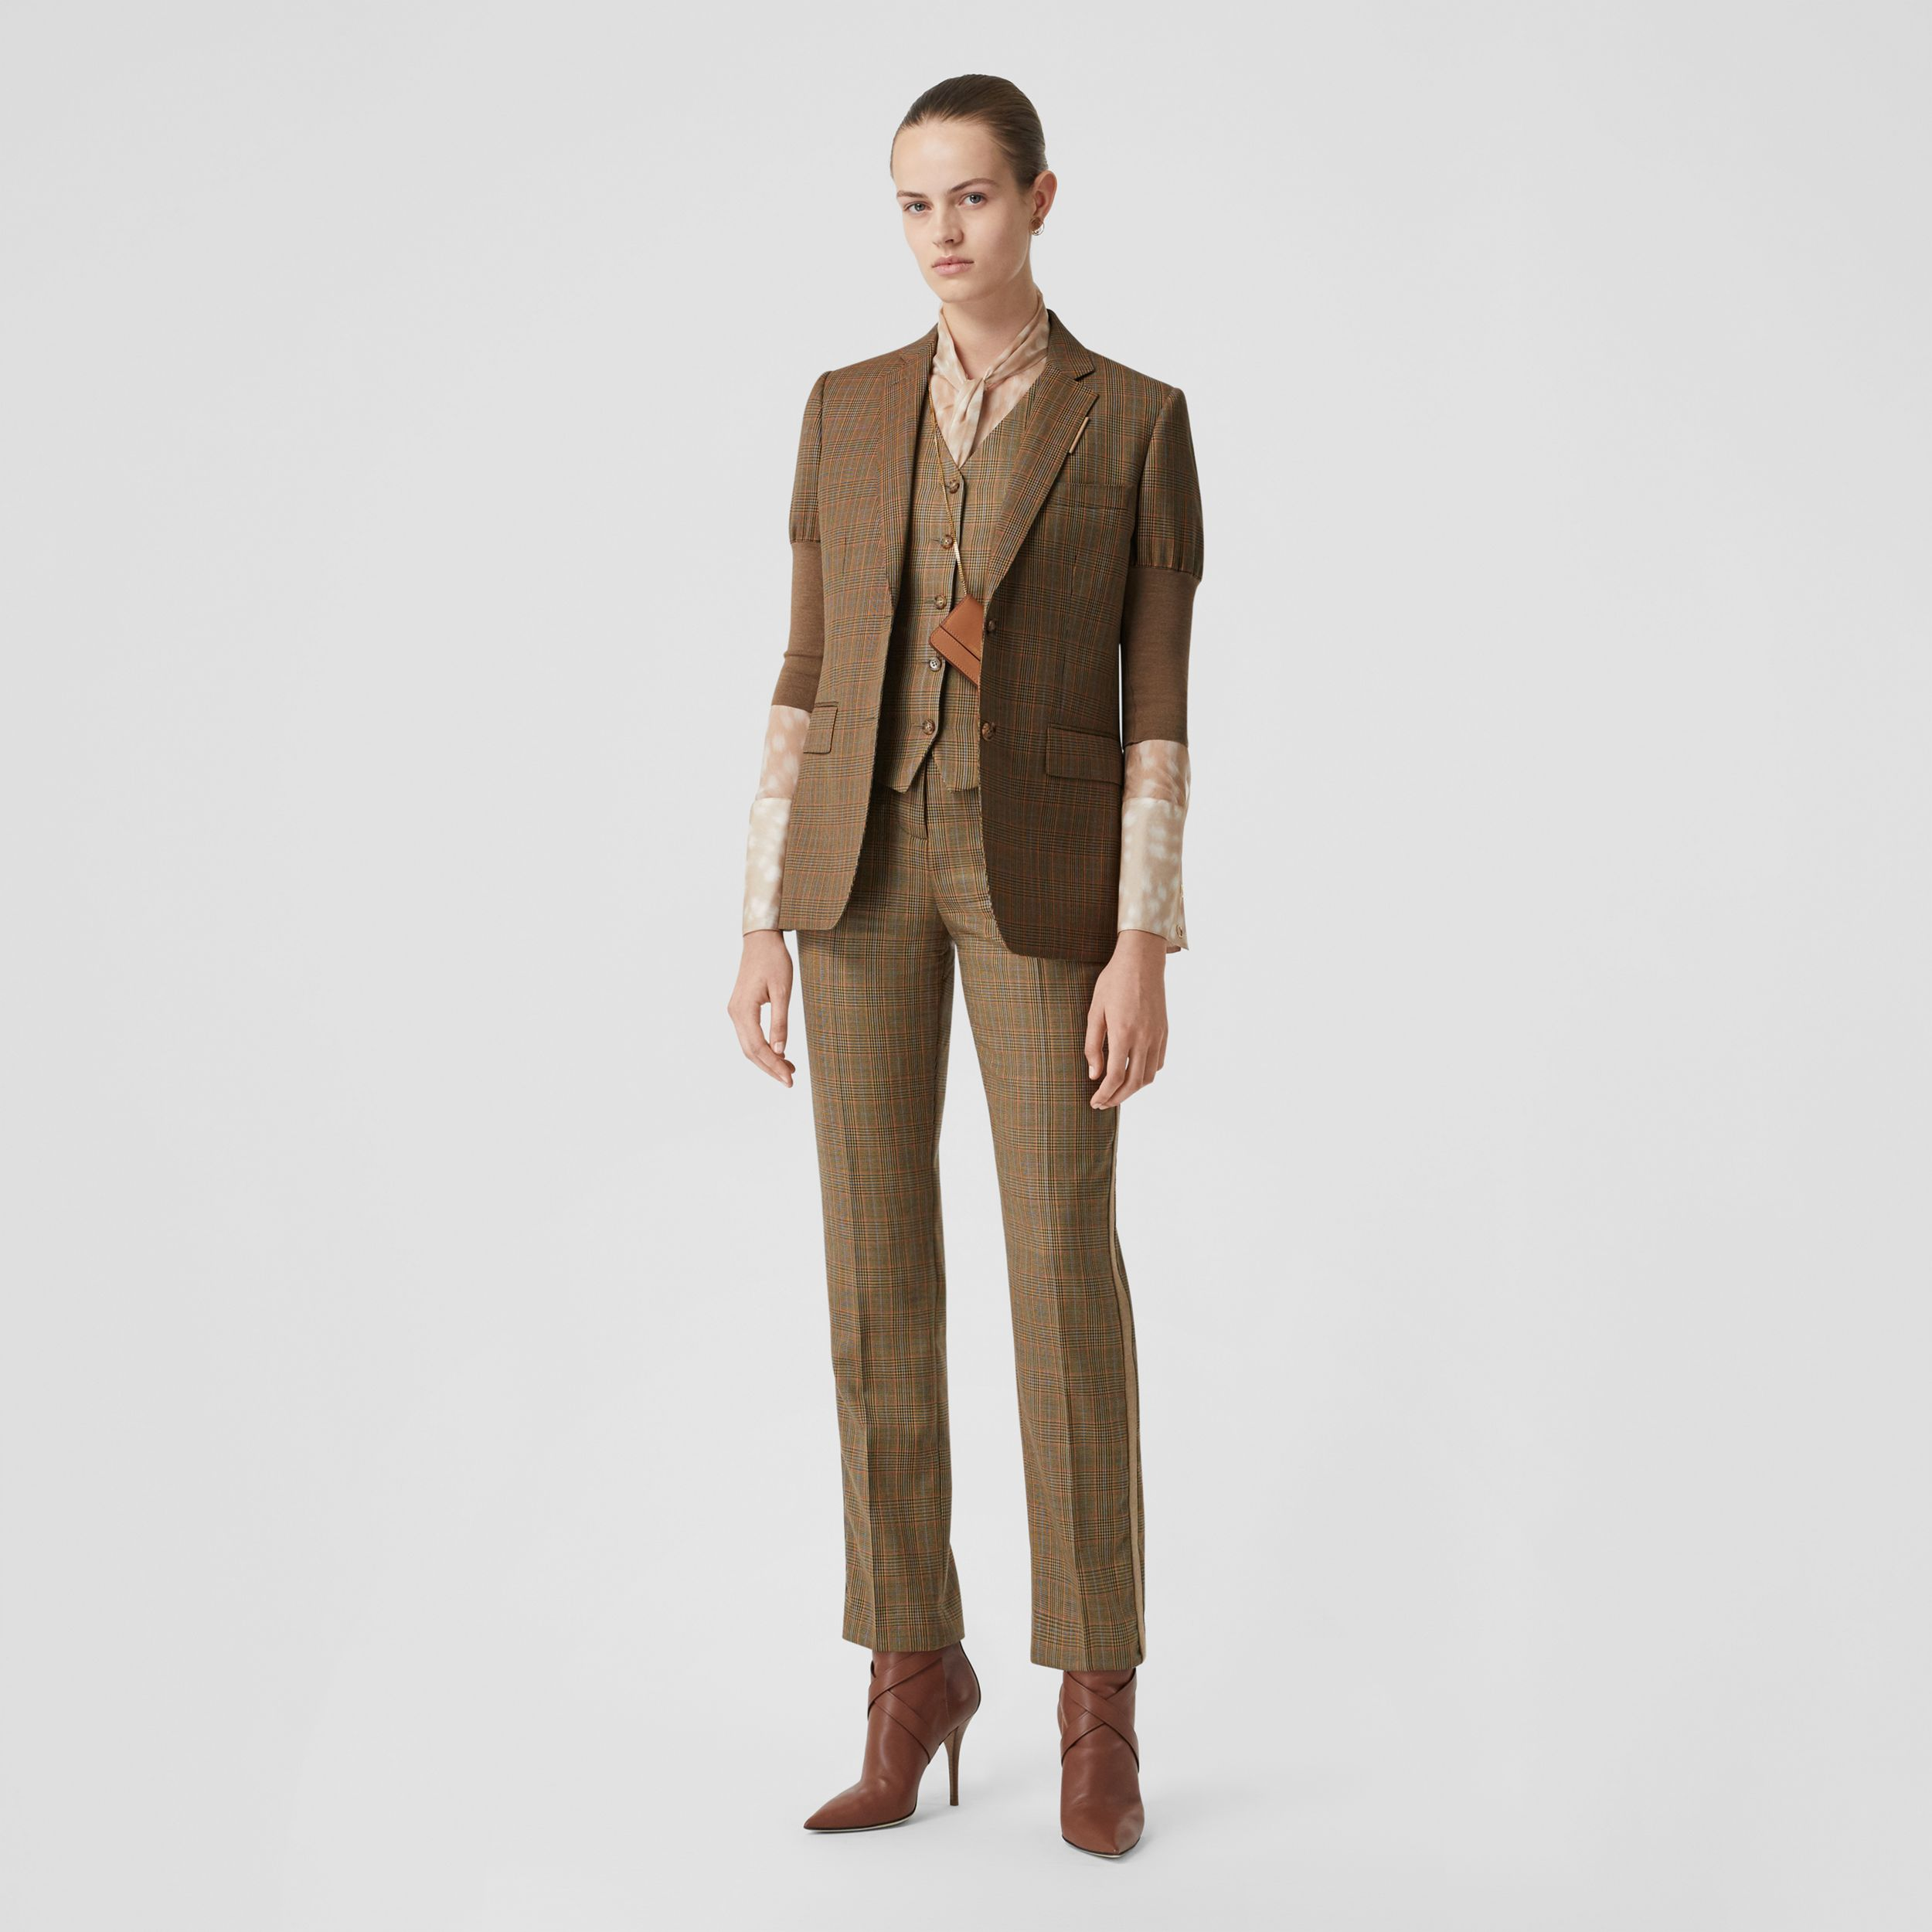 Knitted Sleeve Houndstooth Check Wool Tailored Jacket in Fawn - Women | Burberry Hong Kong S.A.R - 1